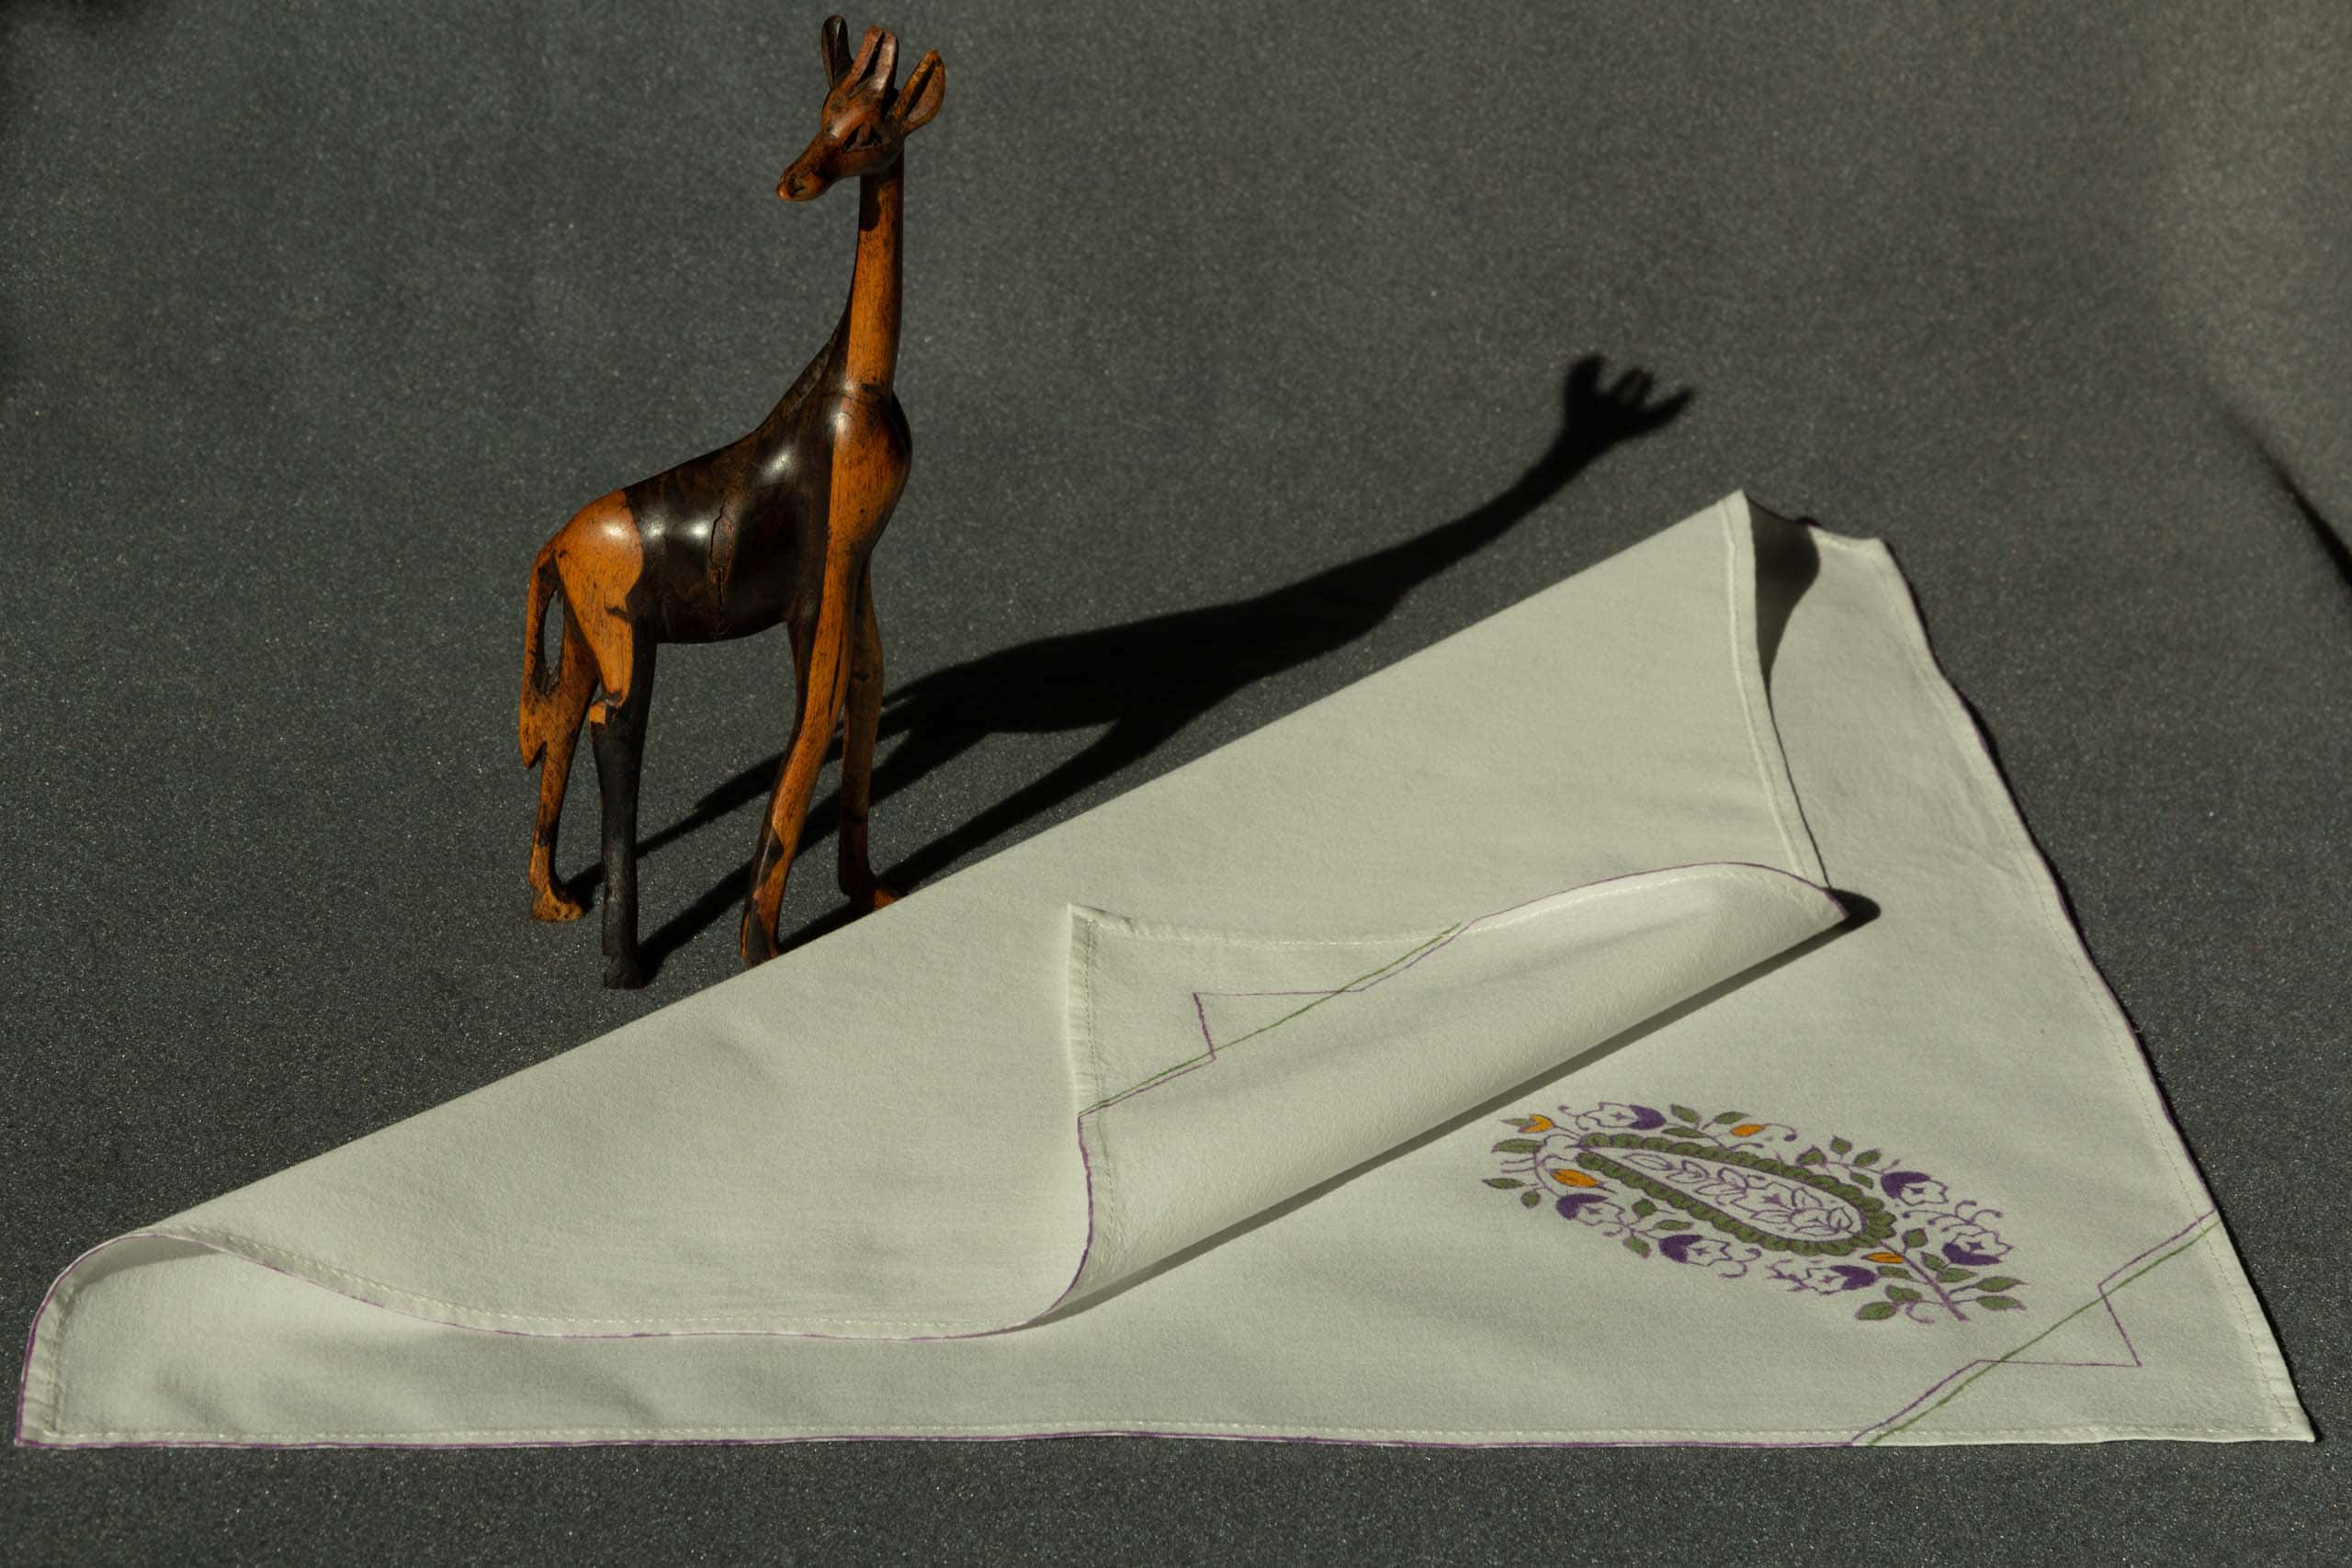 A partially folded handkerchief with a small wooden giraffe next to it